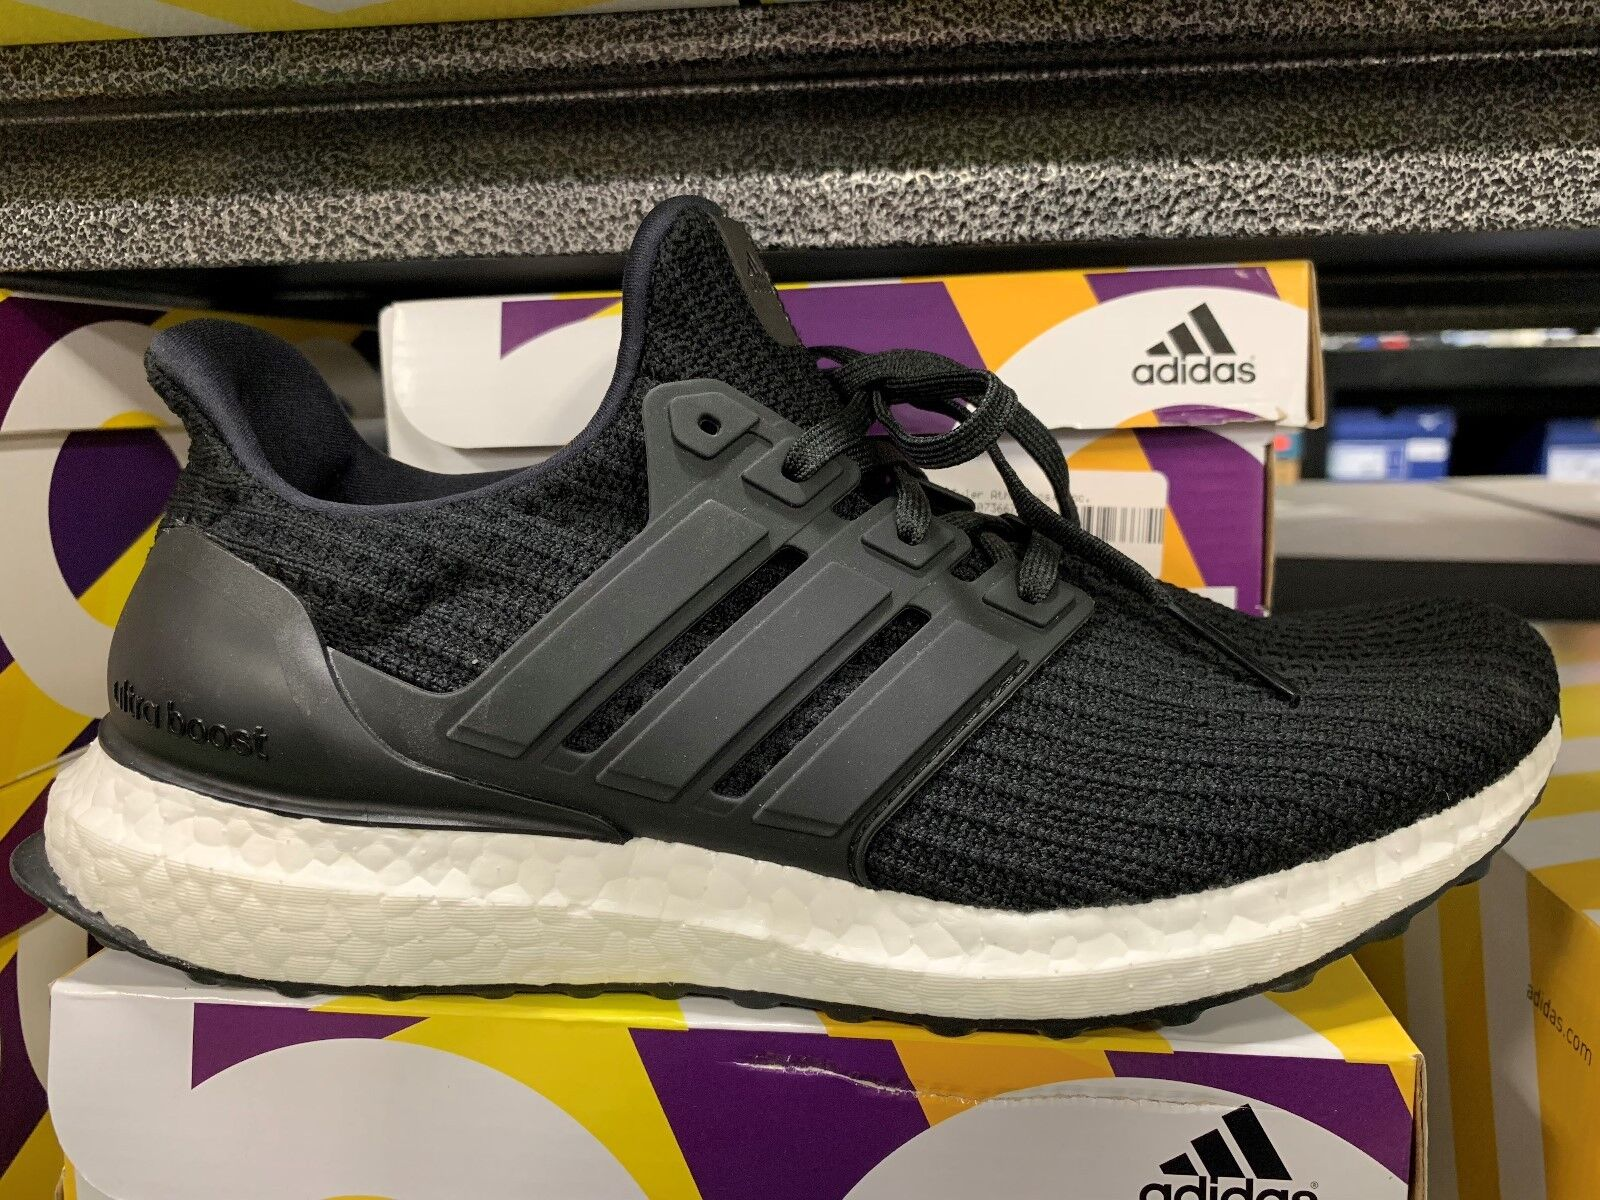 Adidas Ultra Boost Style  BB6166 - Brand New in Box - Authorized Adidas Dealer